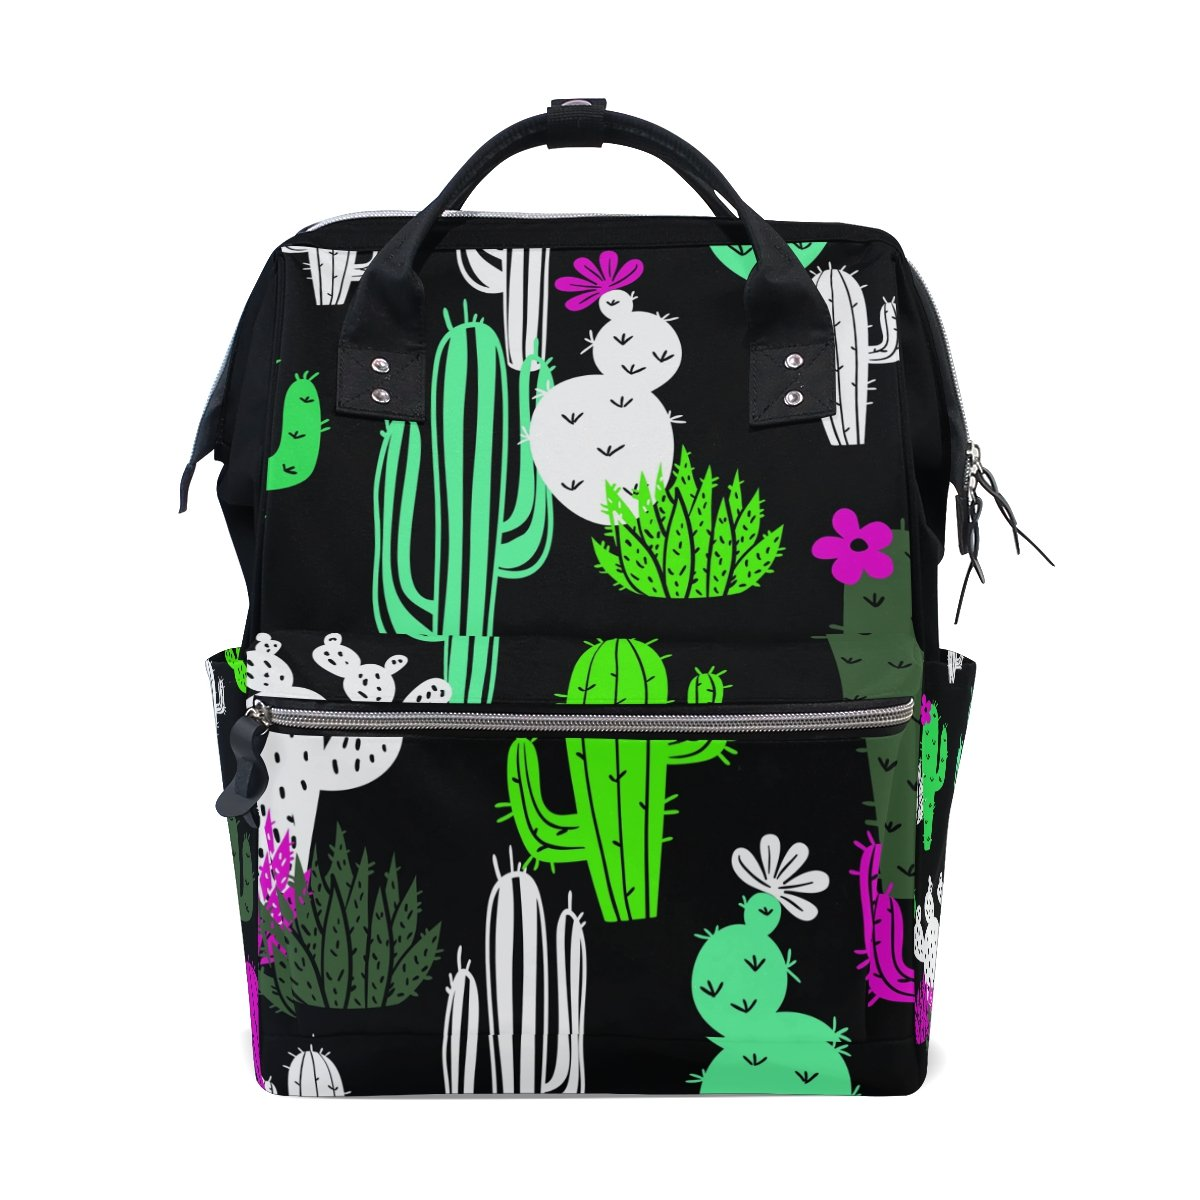 Hipster Floral Cactus Diaper Bag Bookbag School Shoulder Multi Functional Stylish Large Backpack Capacity Nappy Bags Mummy Durable Travel